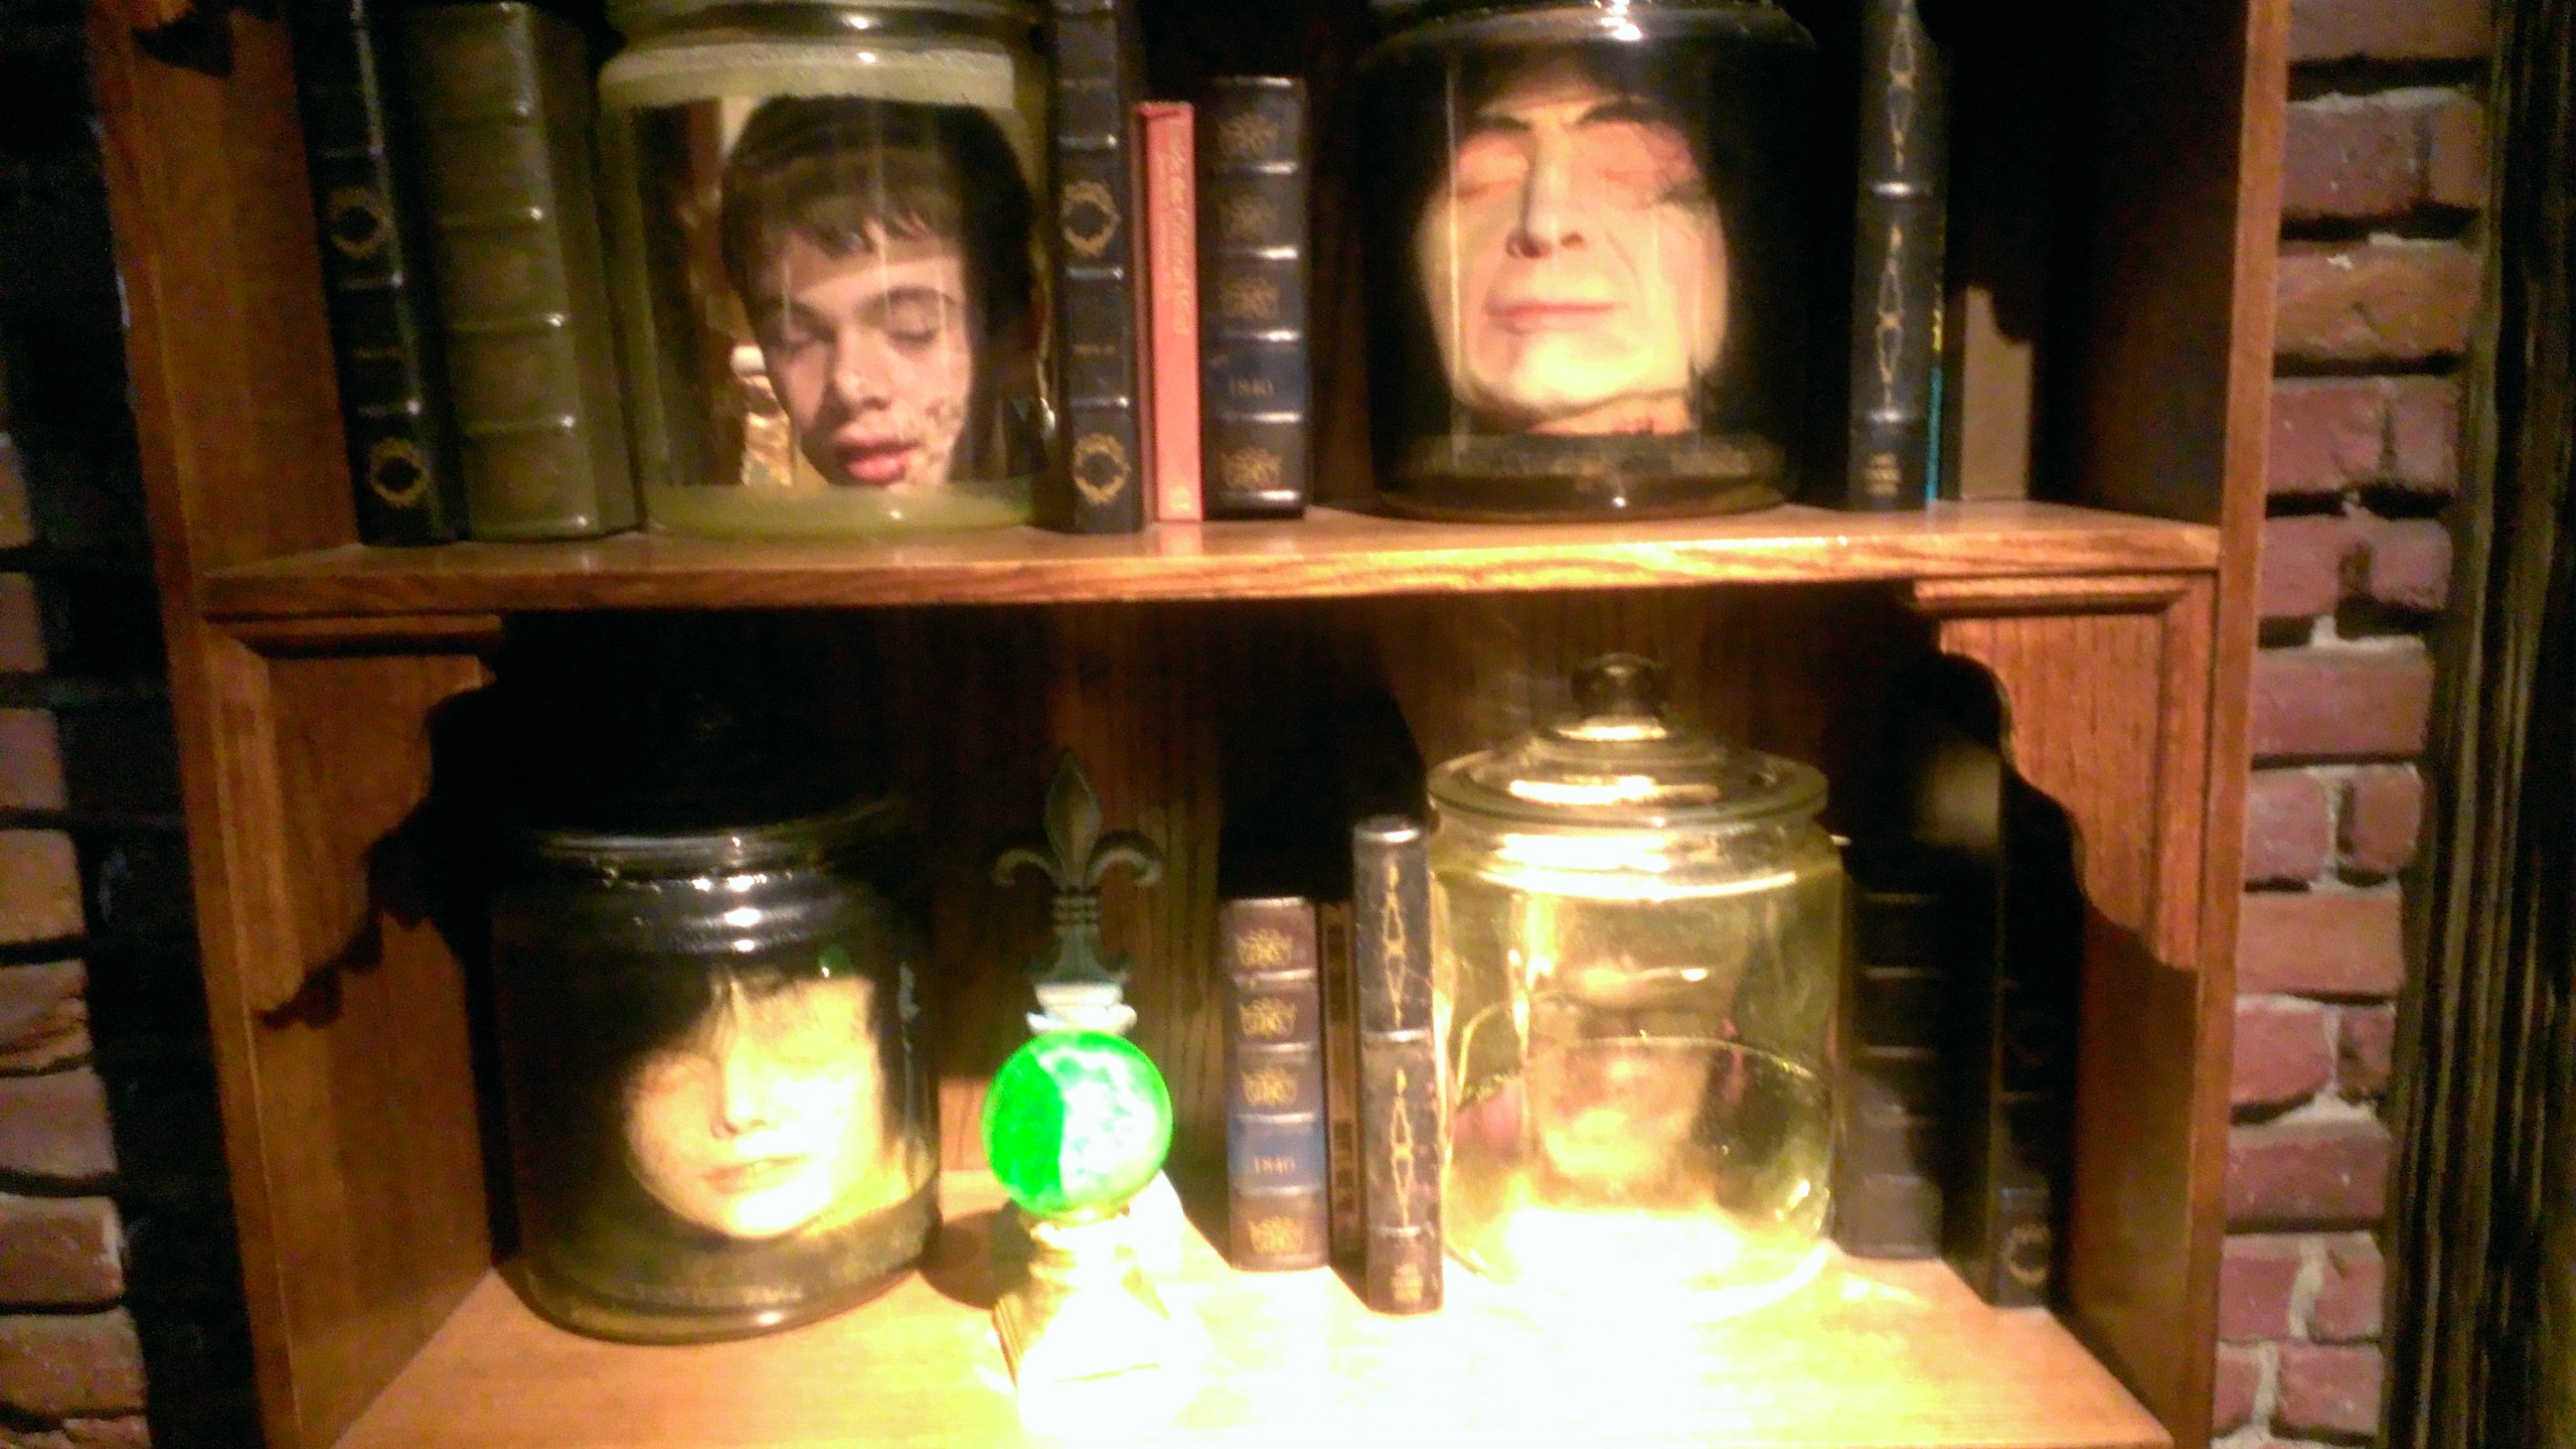 Mommasaid wp 20130215 023 for Heads in jar